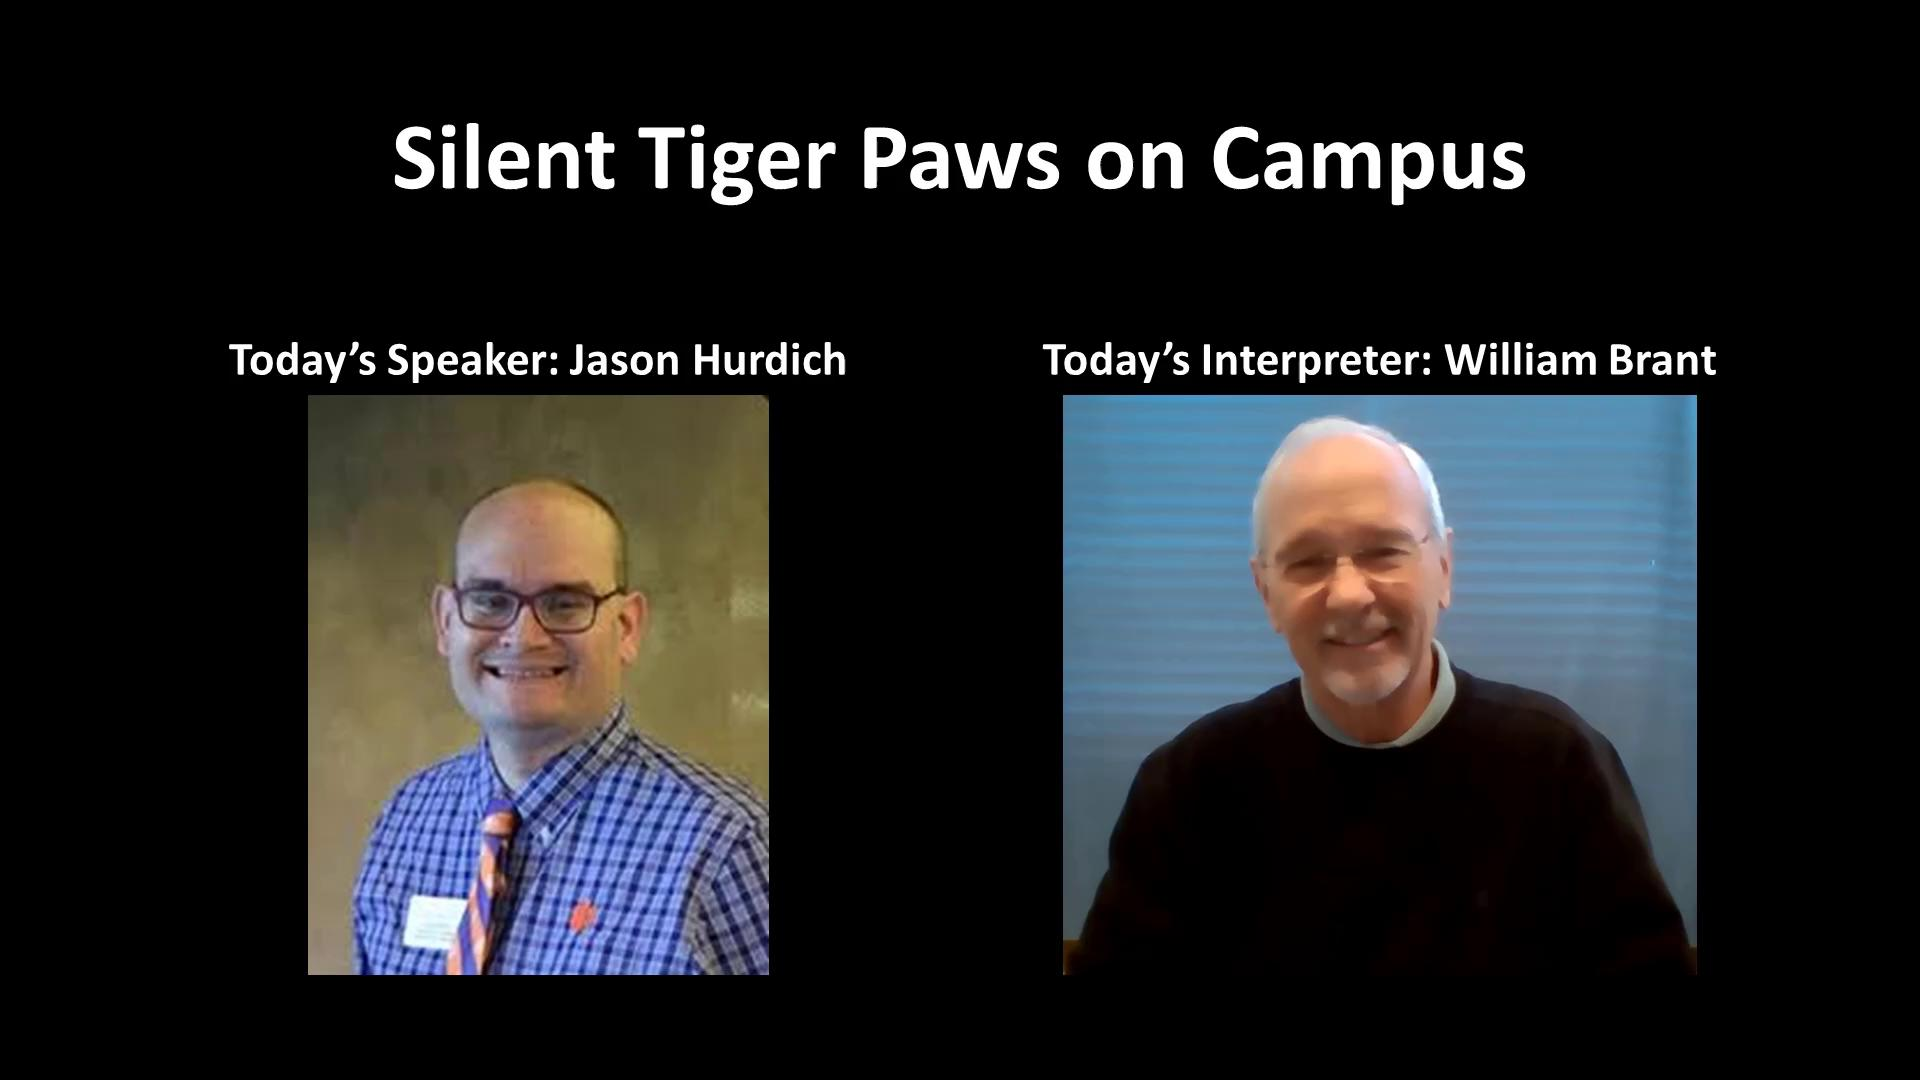 Silent Tiger Paws on Campus